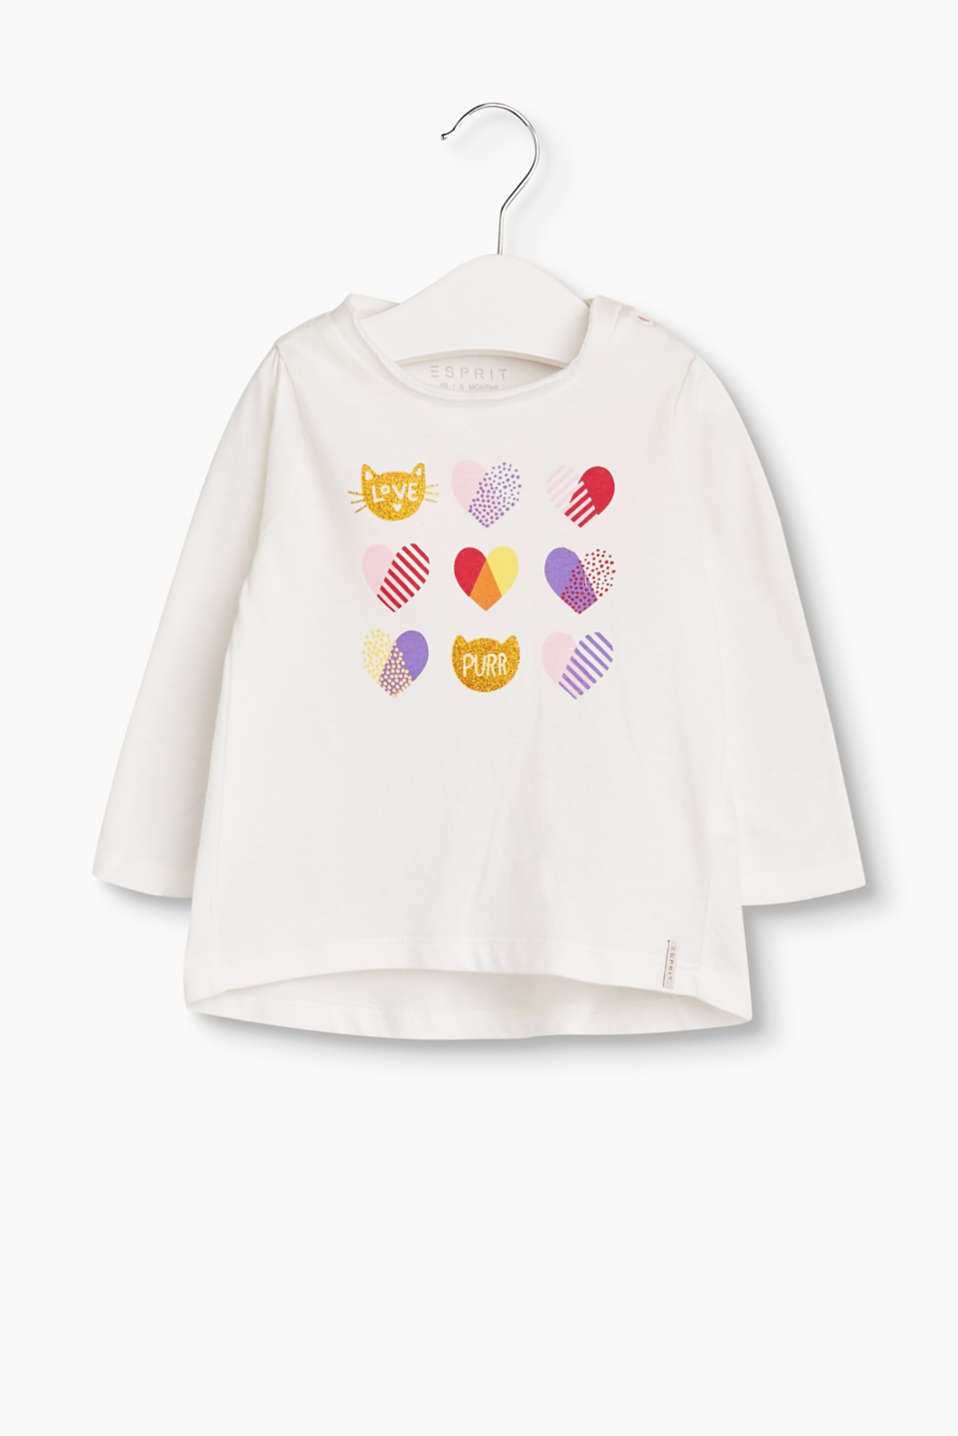 Colourful hearts and glittering cats give this supersoft long sleeve cotton top its sweet look.